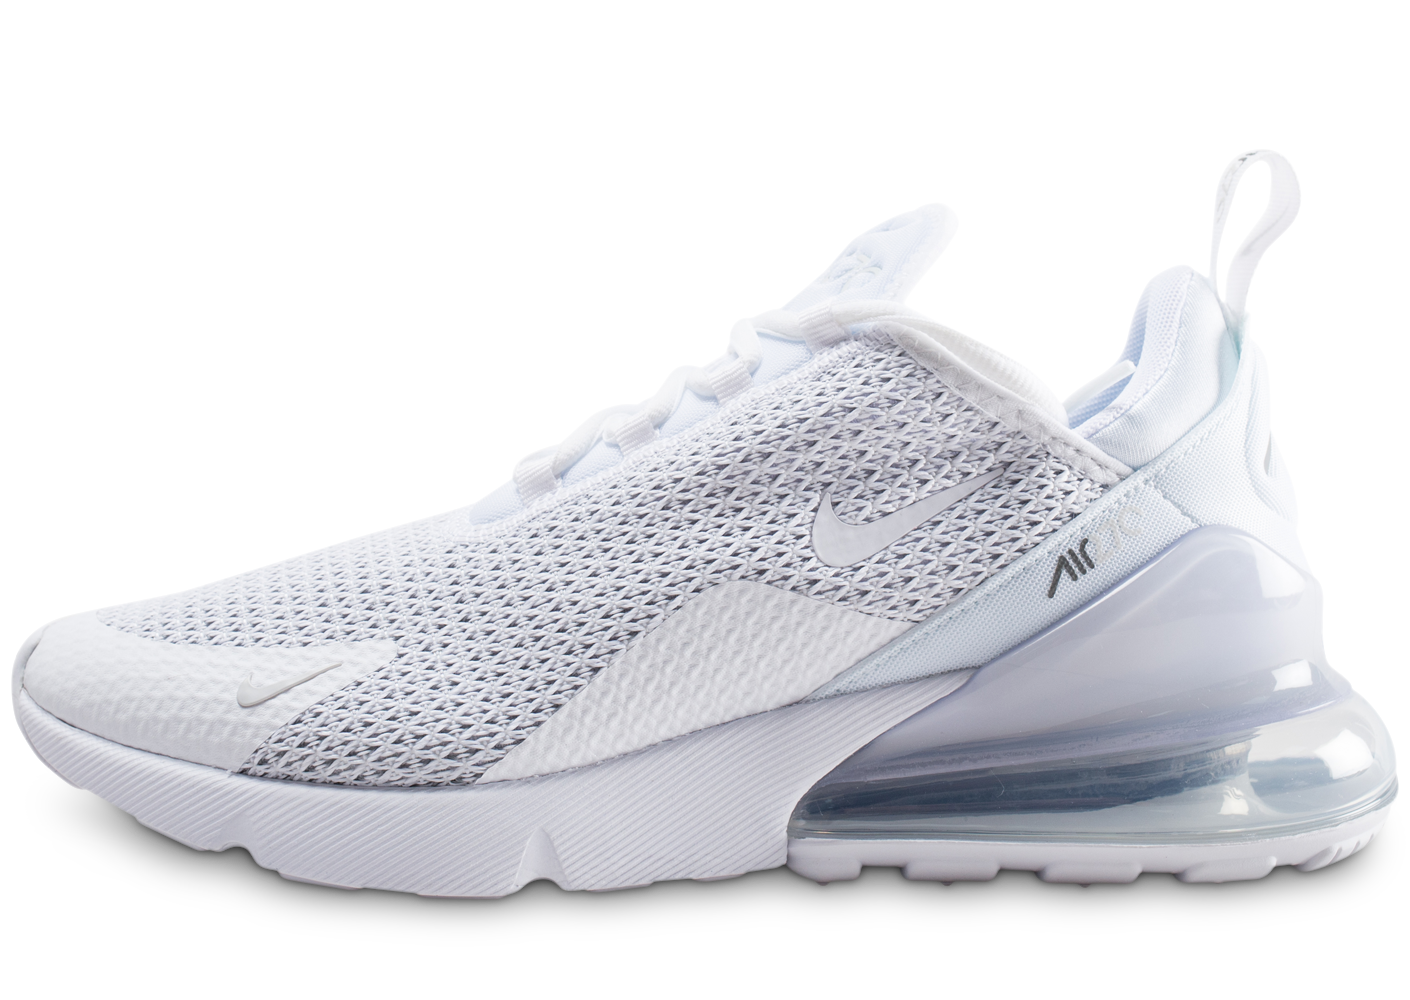 hot sale online 6918b 7cc22 Nike homme air max 270 blanc argent baskets